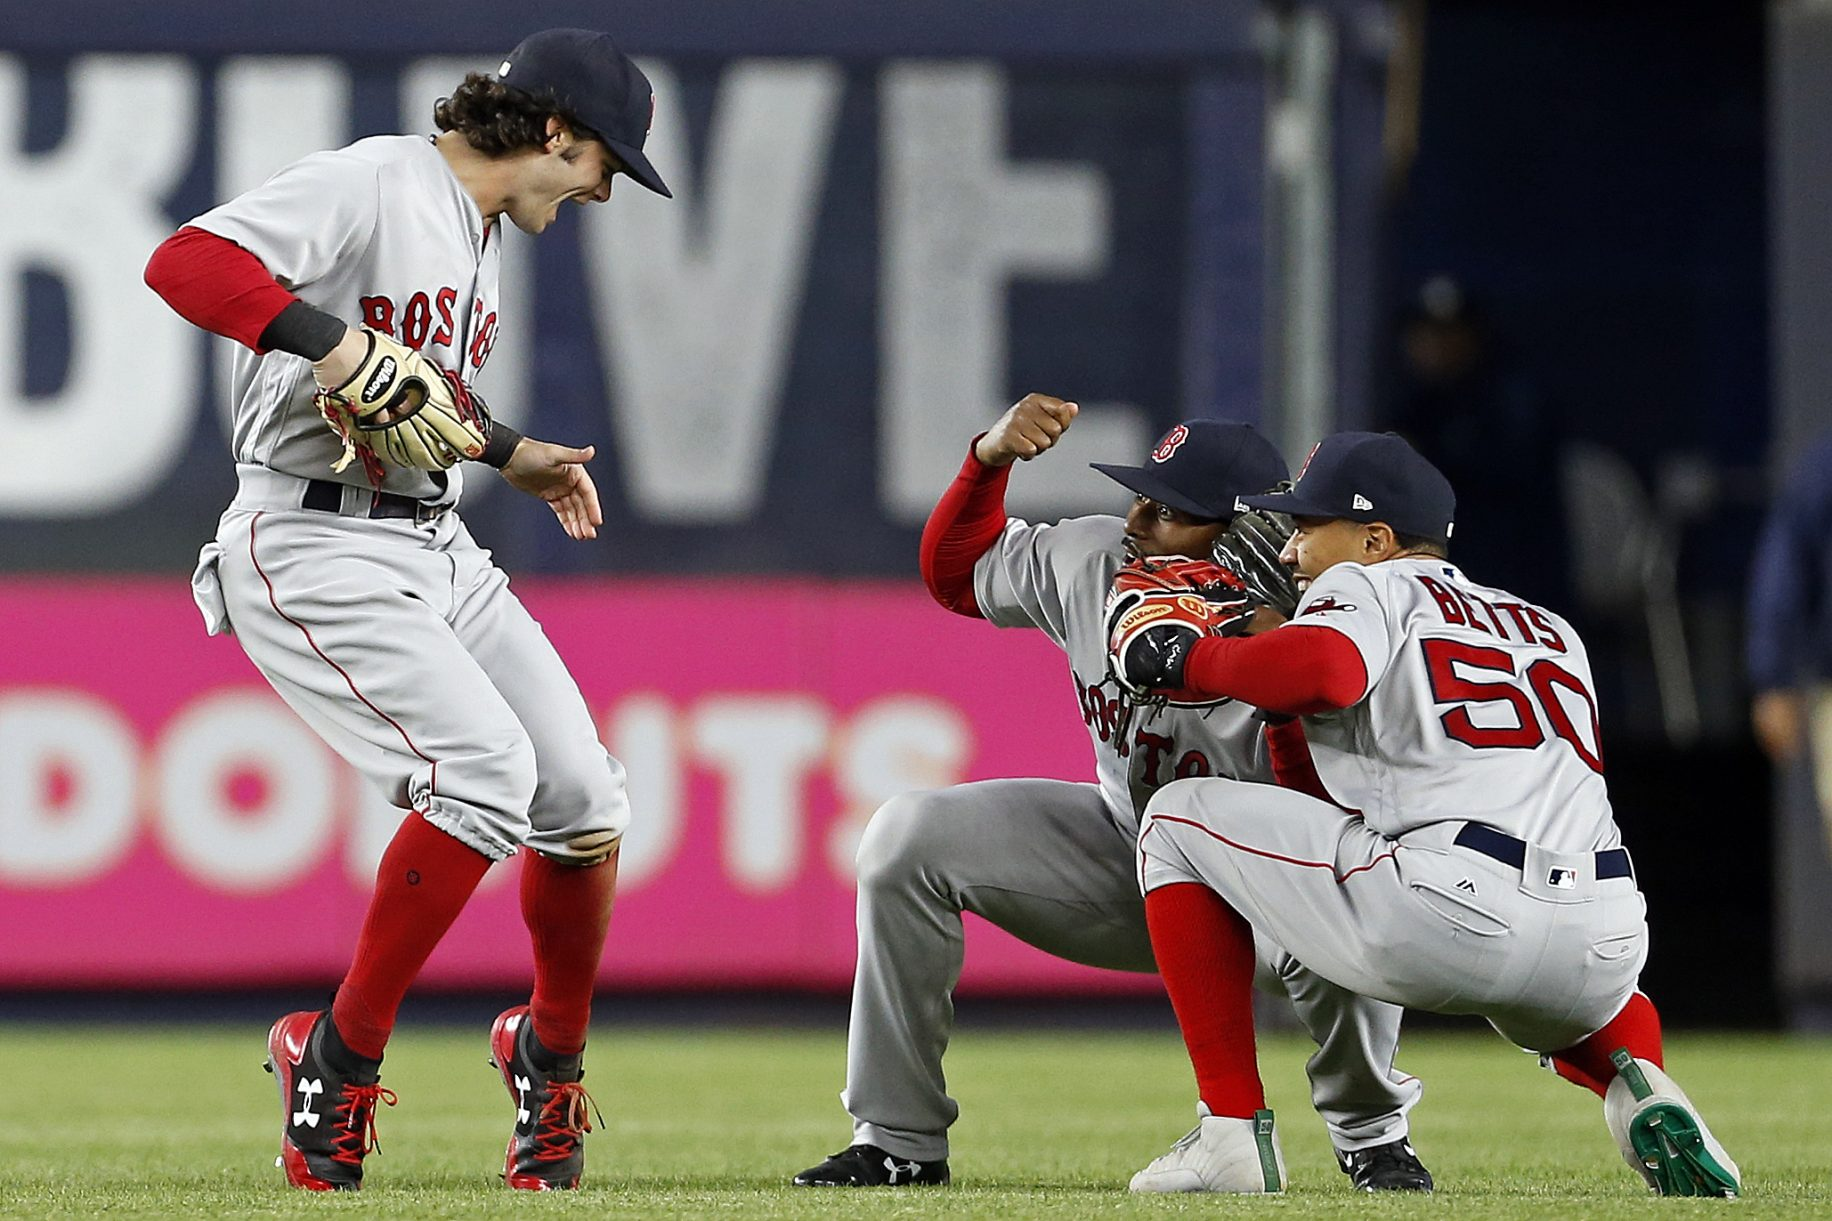 New York Yankees Come Up Short In Red Sox Series Opener